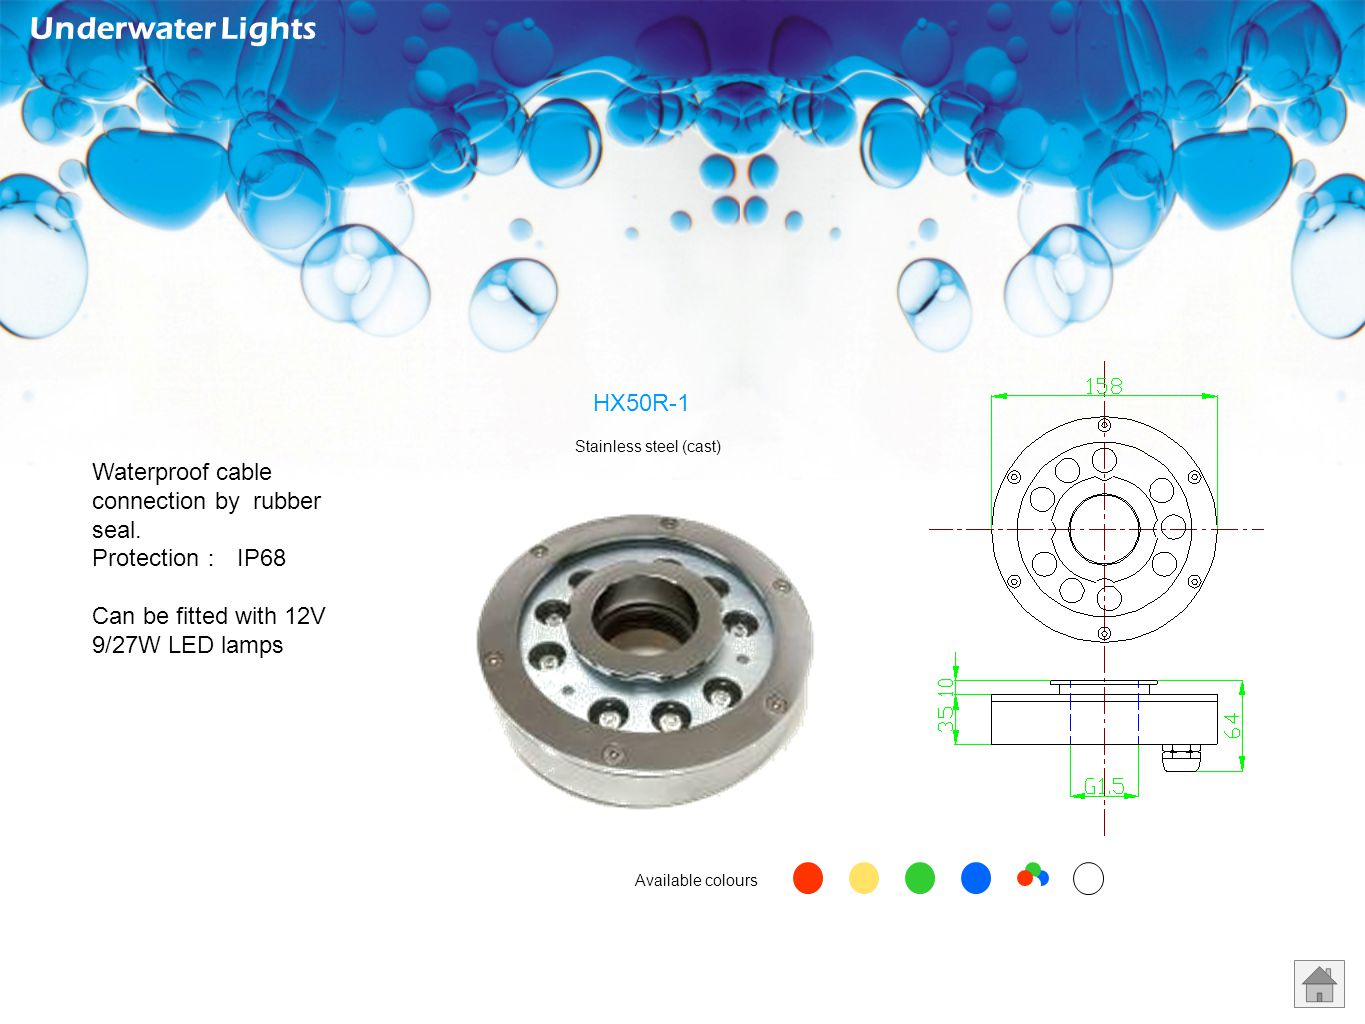 Underwater Lights HX50R-1 Waterproof cable connection by rubber seal.